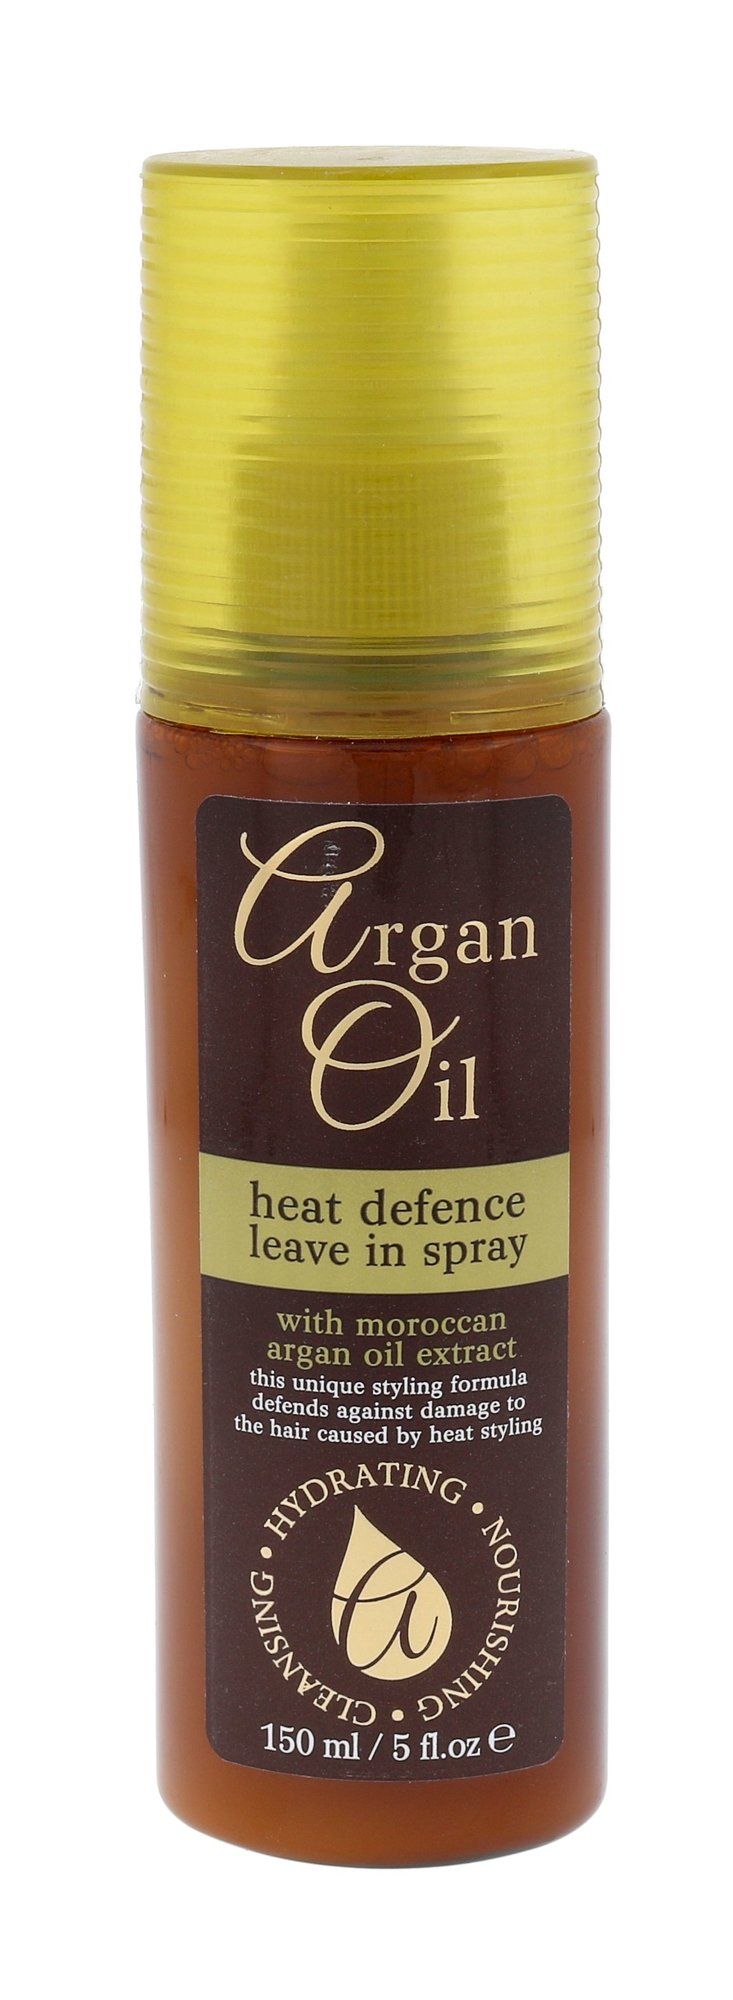 Xpel Argan Oil Cosmetic 150ml